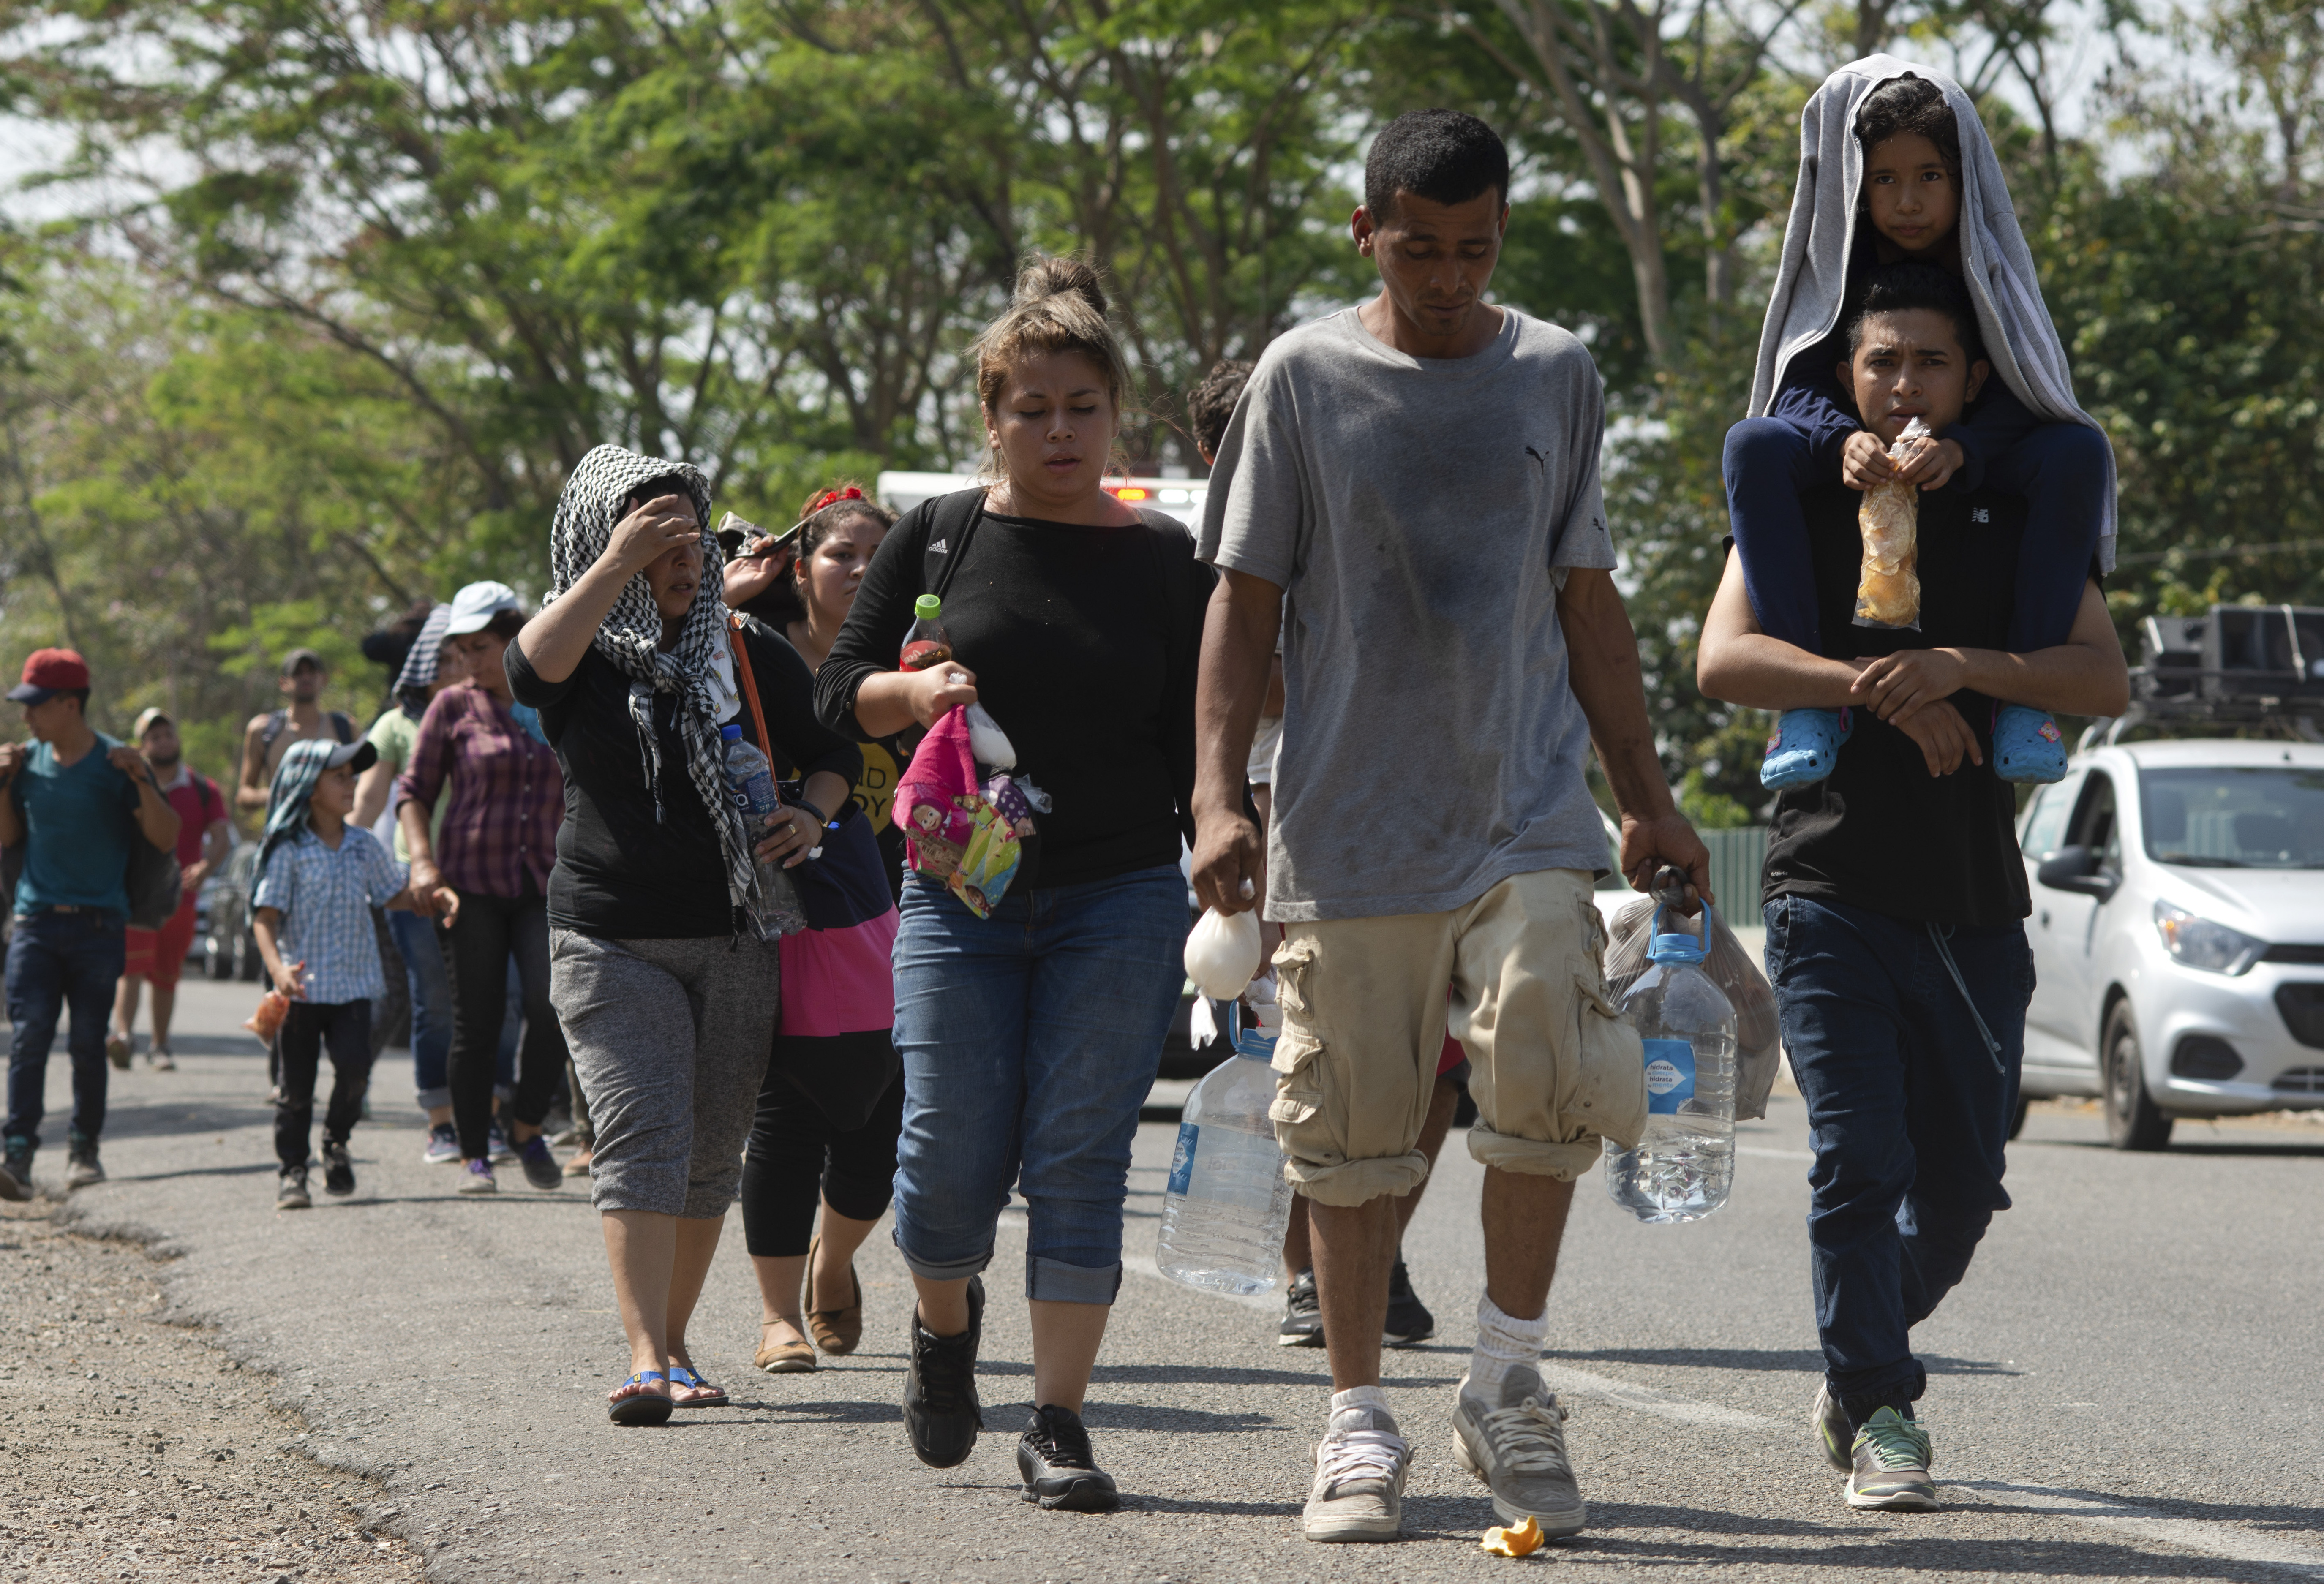 Trump moves to cut aid to Central America, amid caravans and flood of refugees - Fox News thumbnail